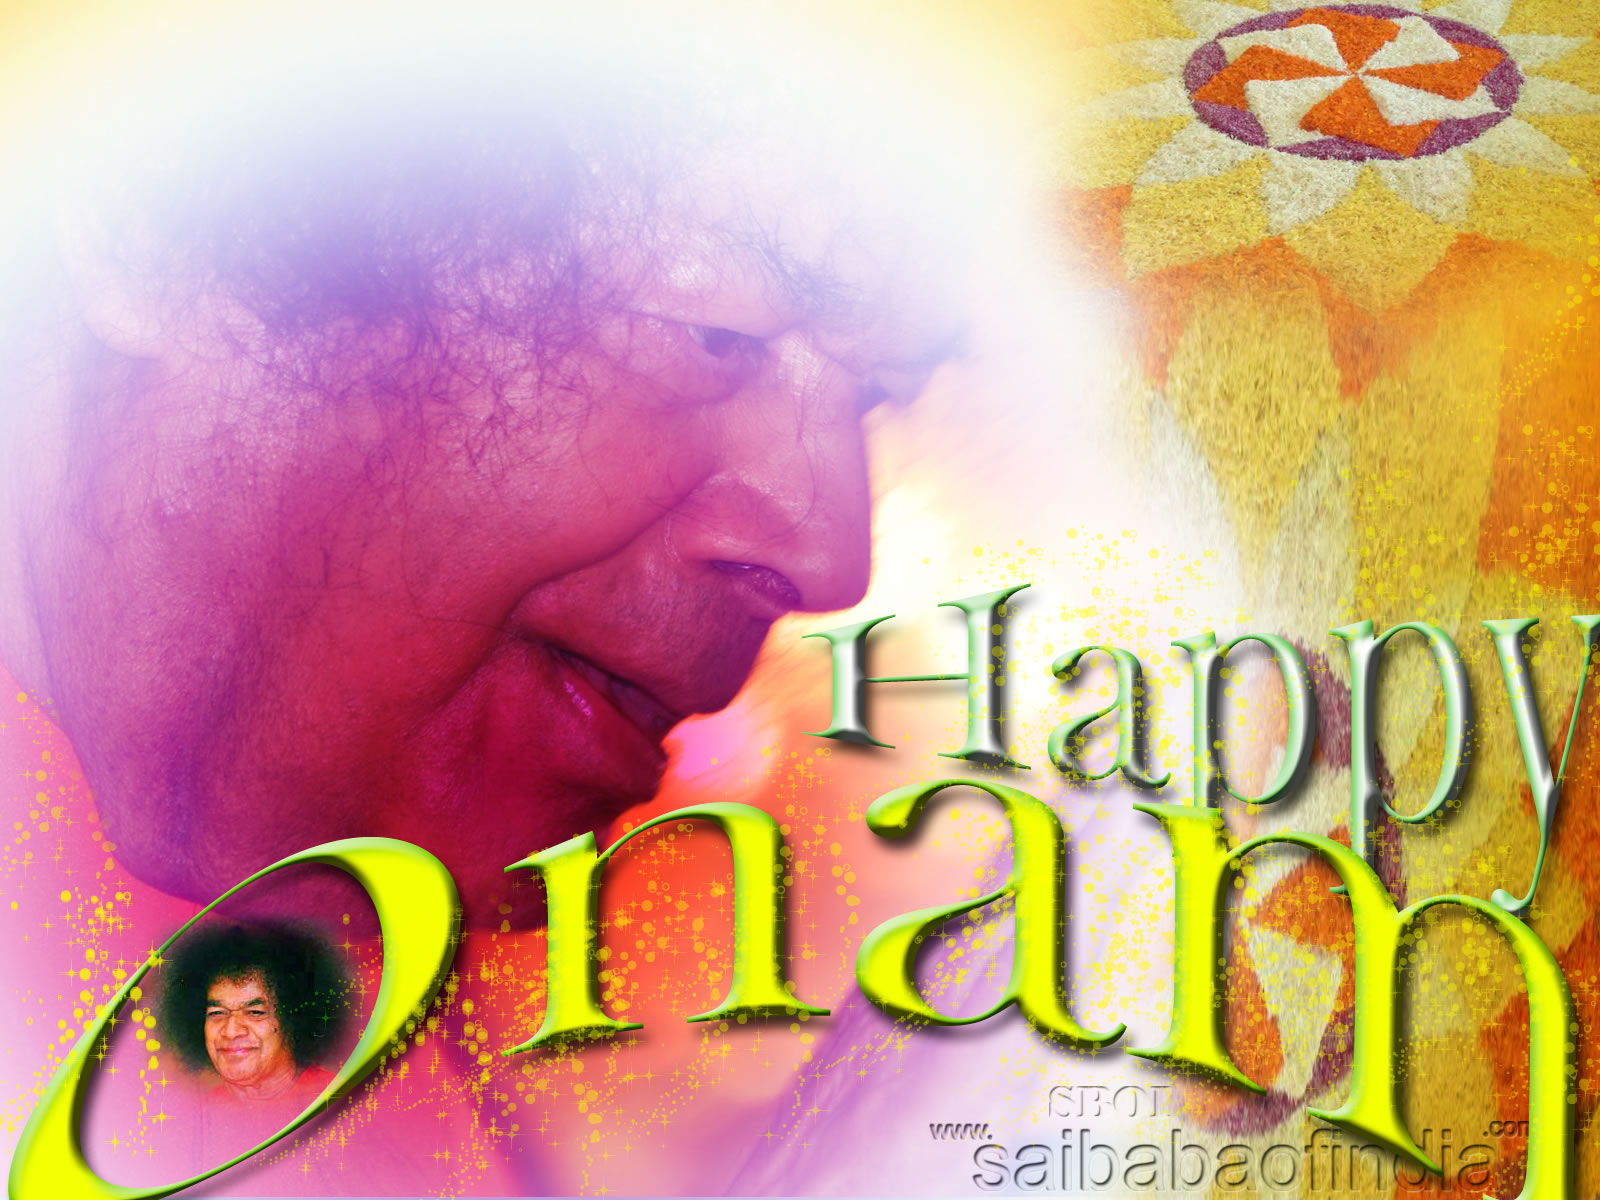 sai baba onam photos- onam updates from puttaparthi - greeting cards